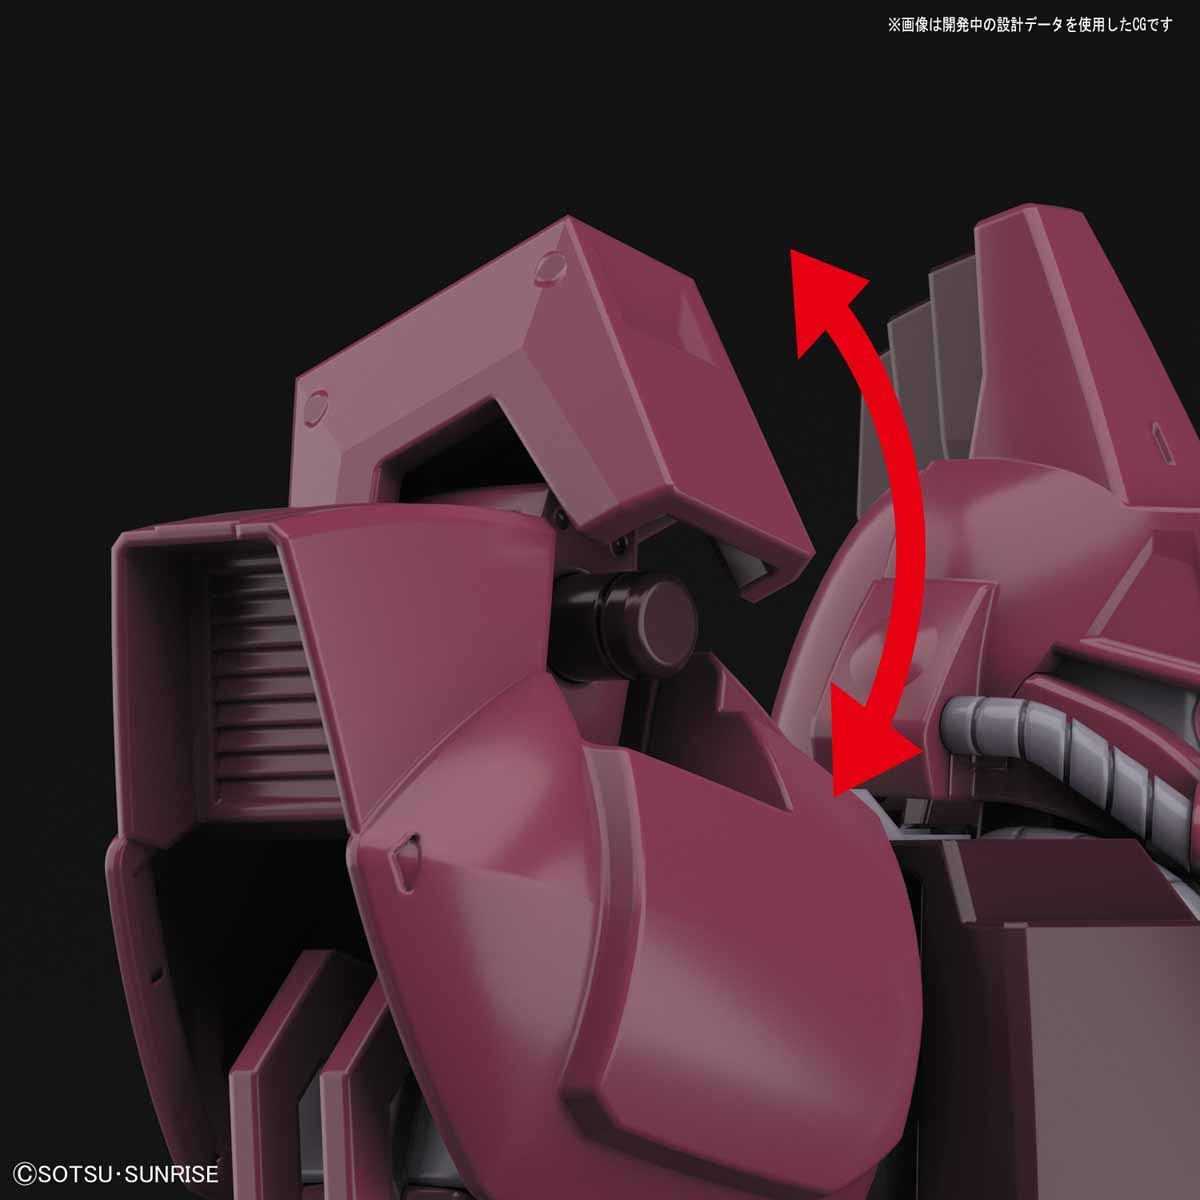 HGUC 1/144 RMS-117 Galbaldy β - Release Info - Gundam Kits Collection News and Reviews